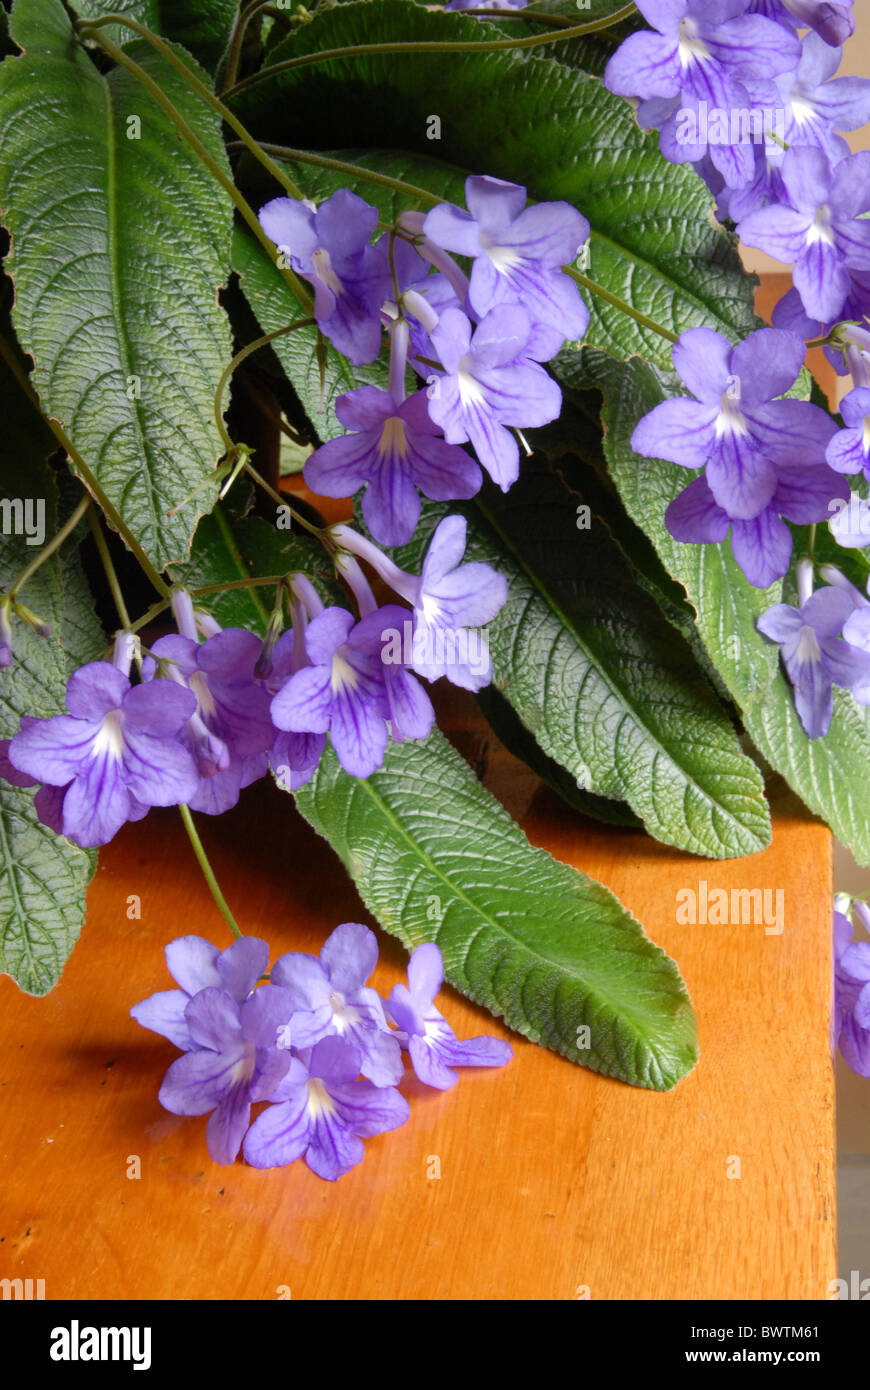 Streptocarpus Indoor Indoors Plant Cape Primrose Stem Bloom Blooms Blue House  Plants Houseplants Houseplant Flower Flowering